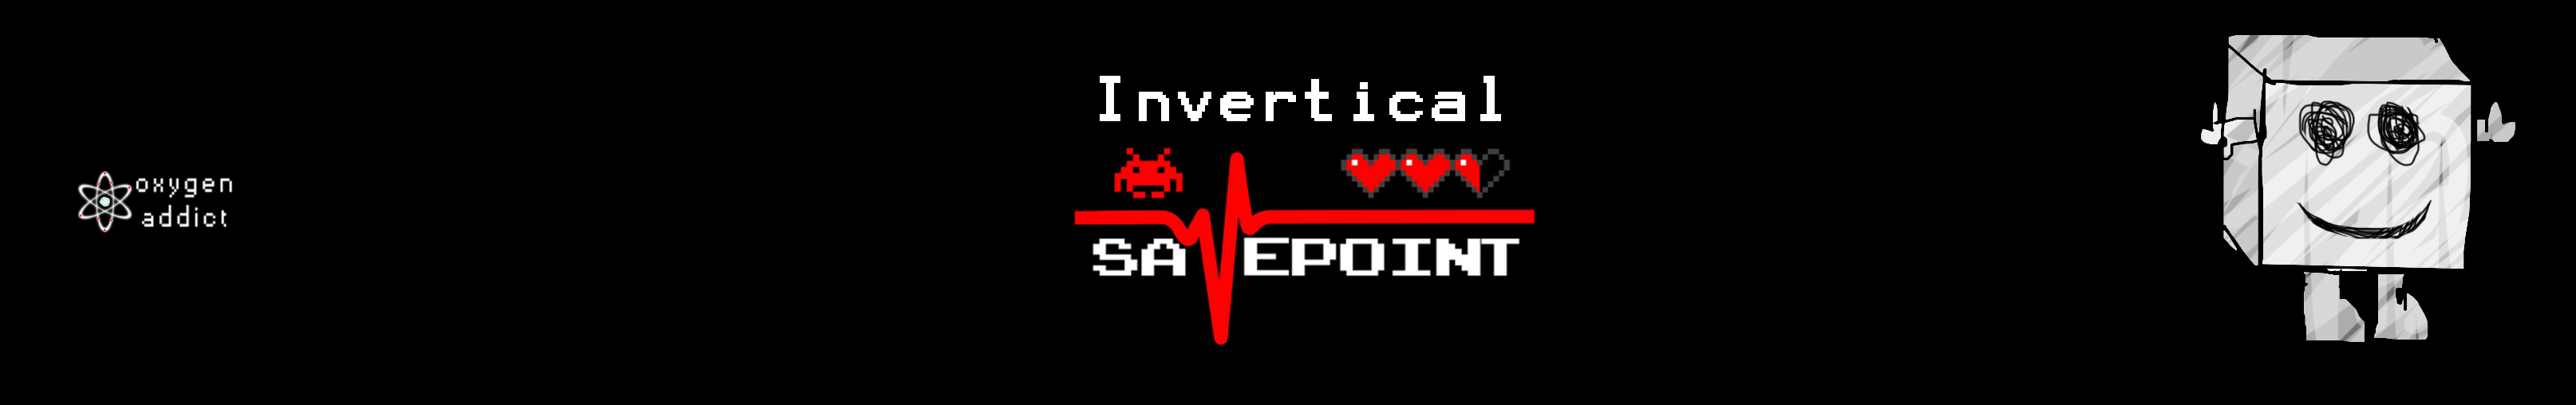 Invertical SavePoint